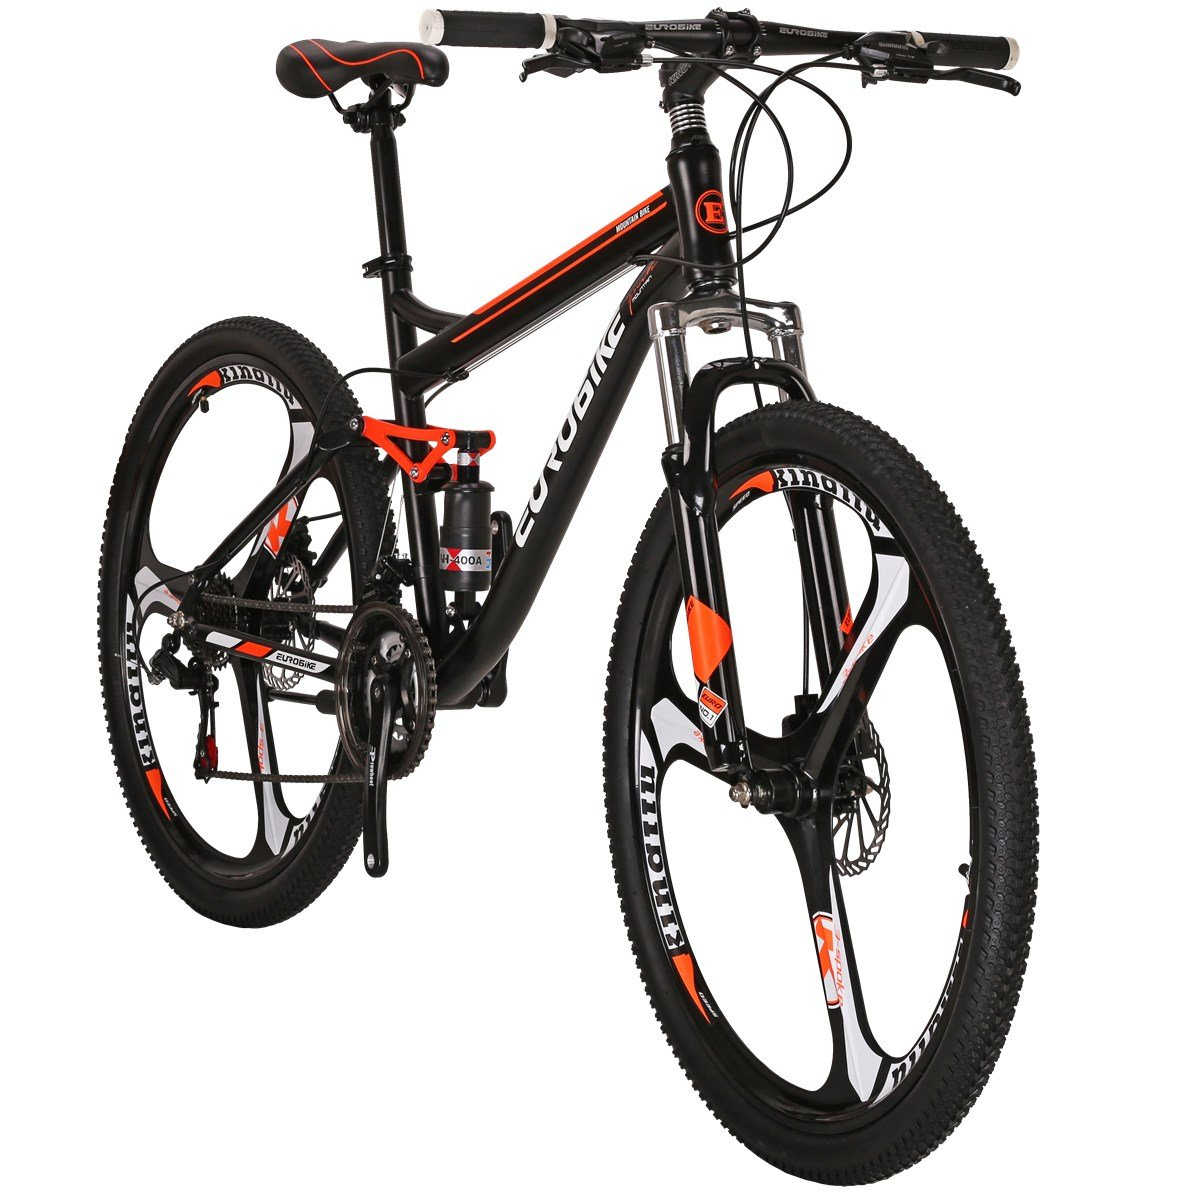 EUROBIKE Moutain Bike S7 Bicycle 21 Speed MTB